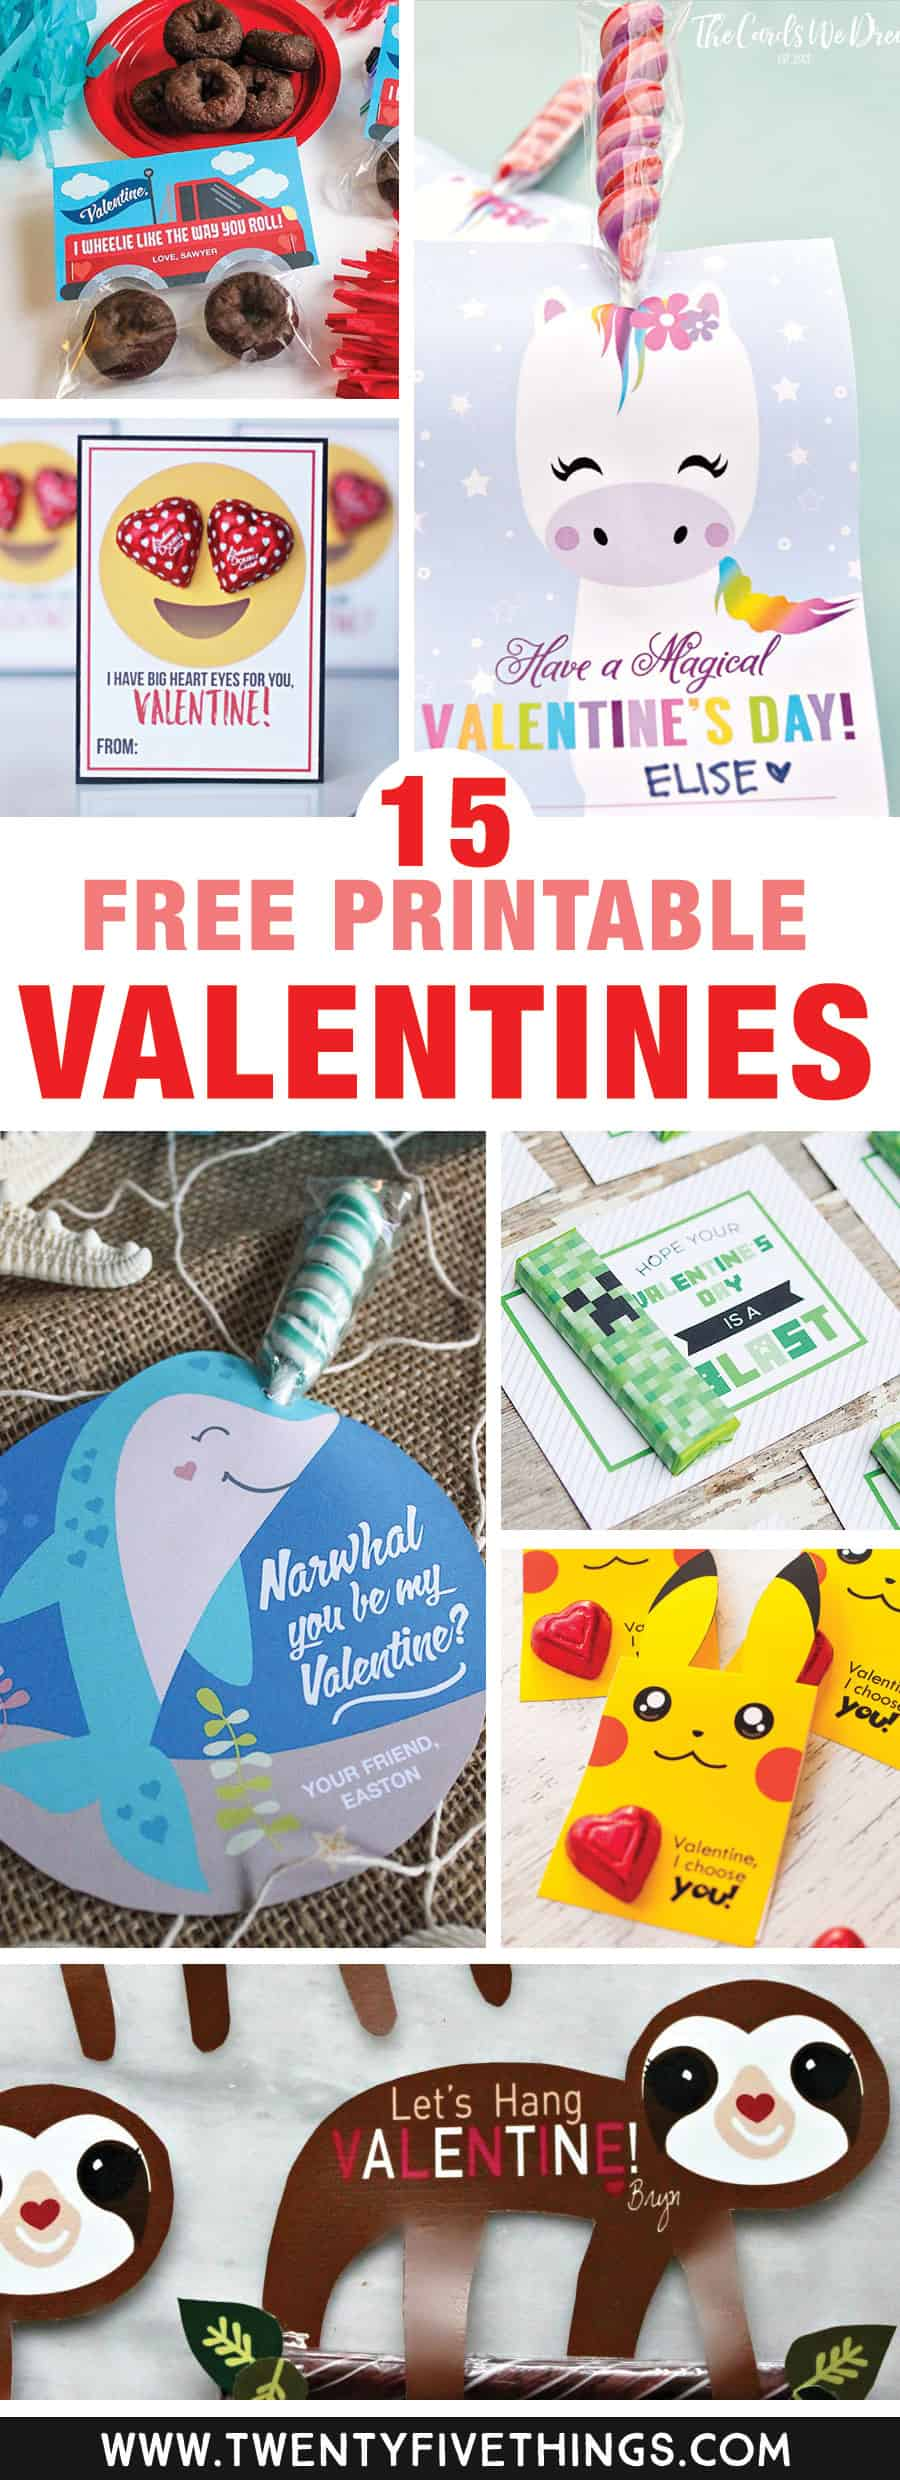 The sloth is beyond cute, but really all of these free printable Valentines for kids are perfect for my kids classroom Valentines. The printables are perfect for people like me who wait until the last minute! They're so easy to print at home. Great list!